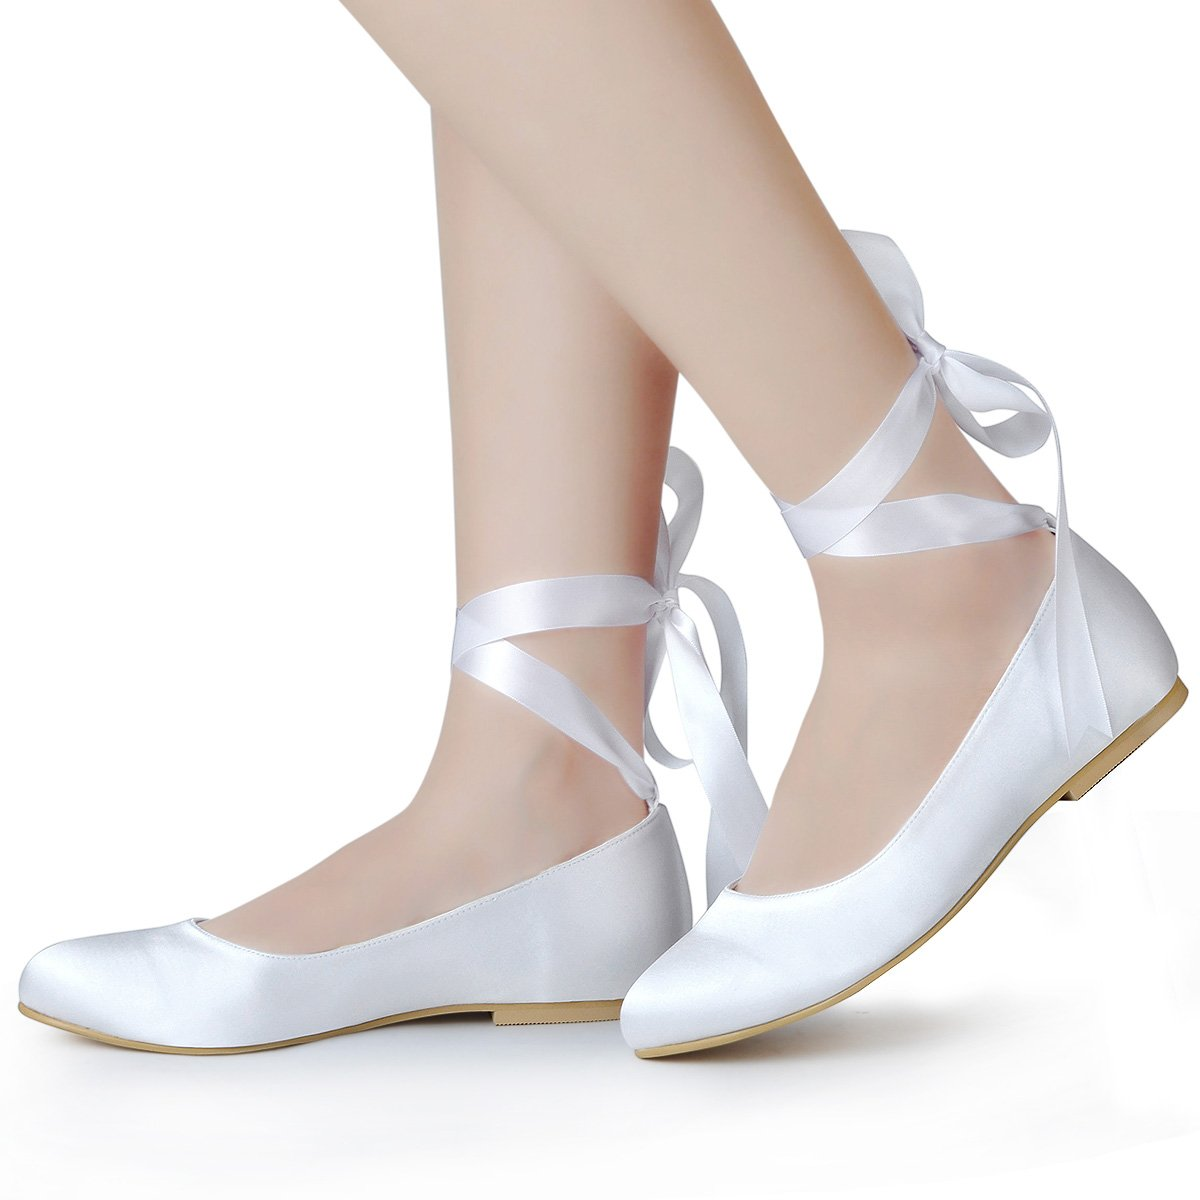 Vintage Style Shoes, Vintage Inspired Shoes ElegantPark Women Comfort Flats Closed Toe Ribbon Tie Satin Wedding Bridal Shoes $42.95 AT vintagedancer.com